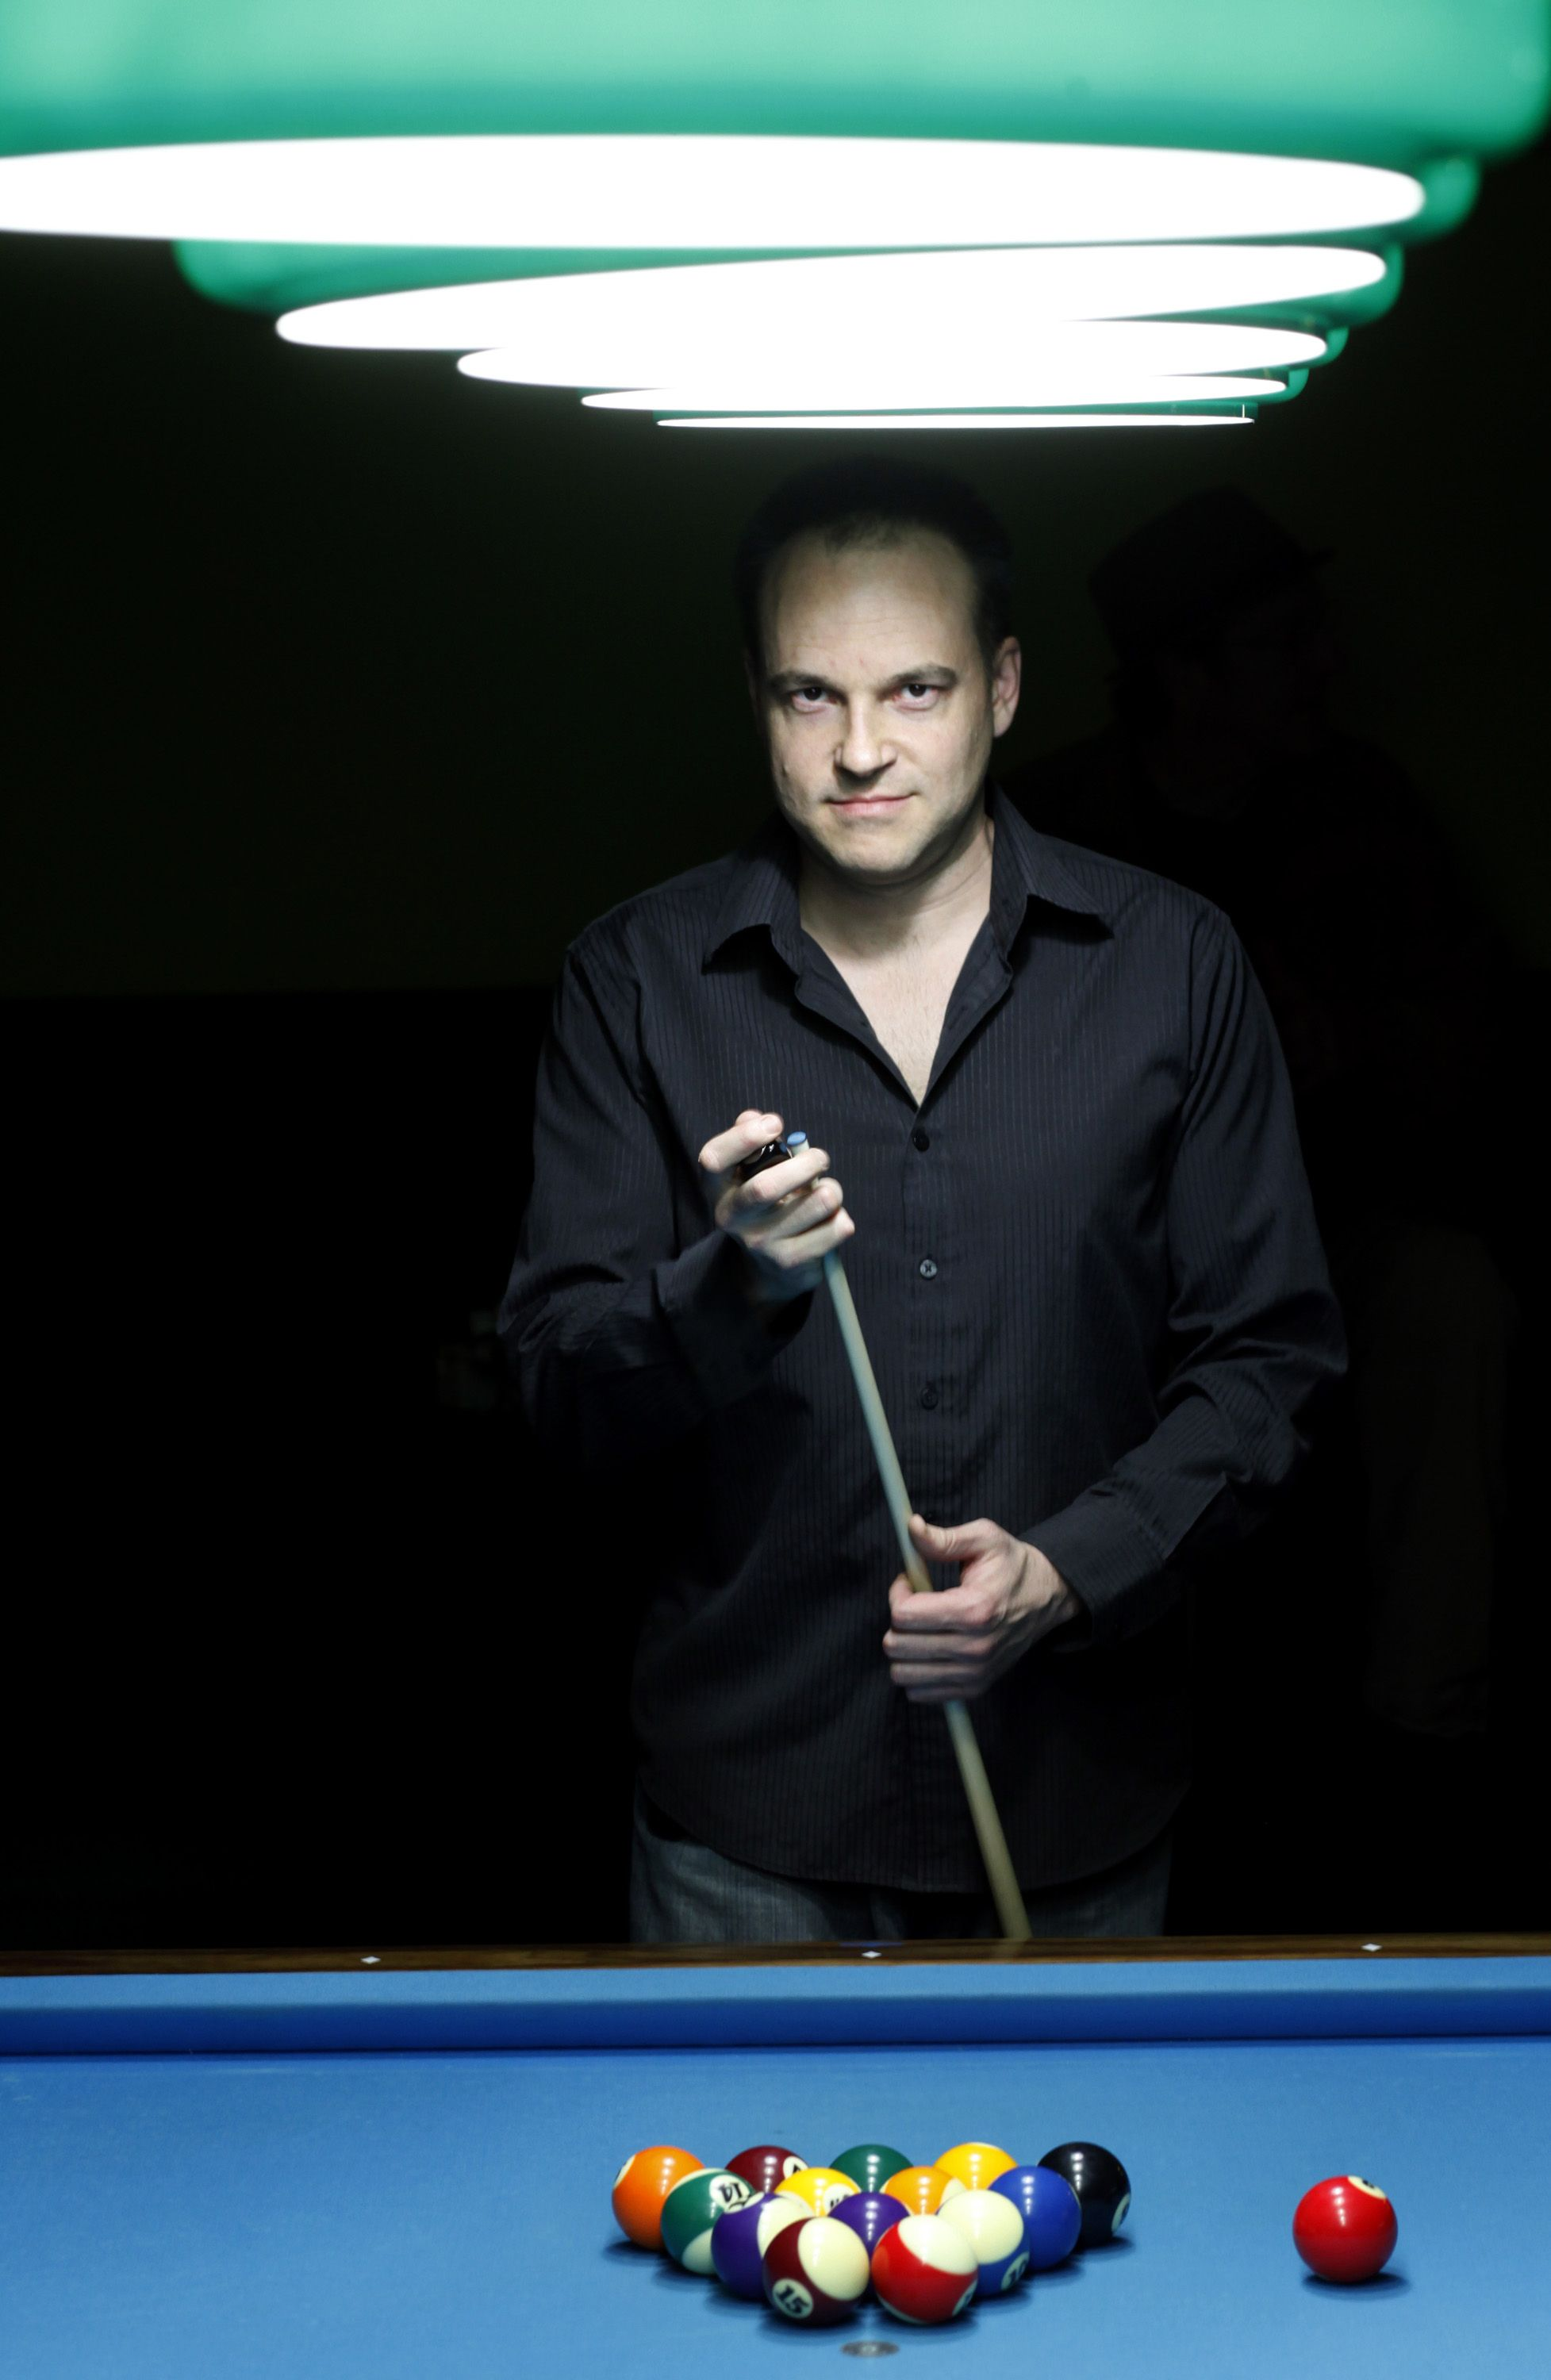 professional billiards players billiards boss max eberle has the